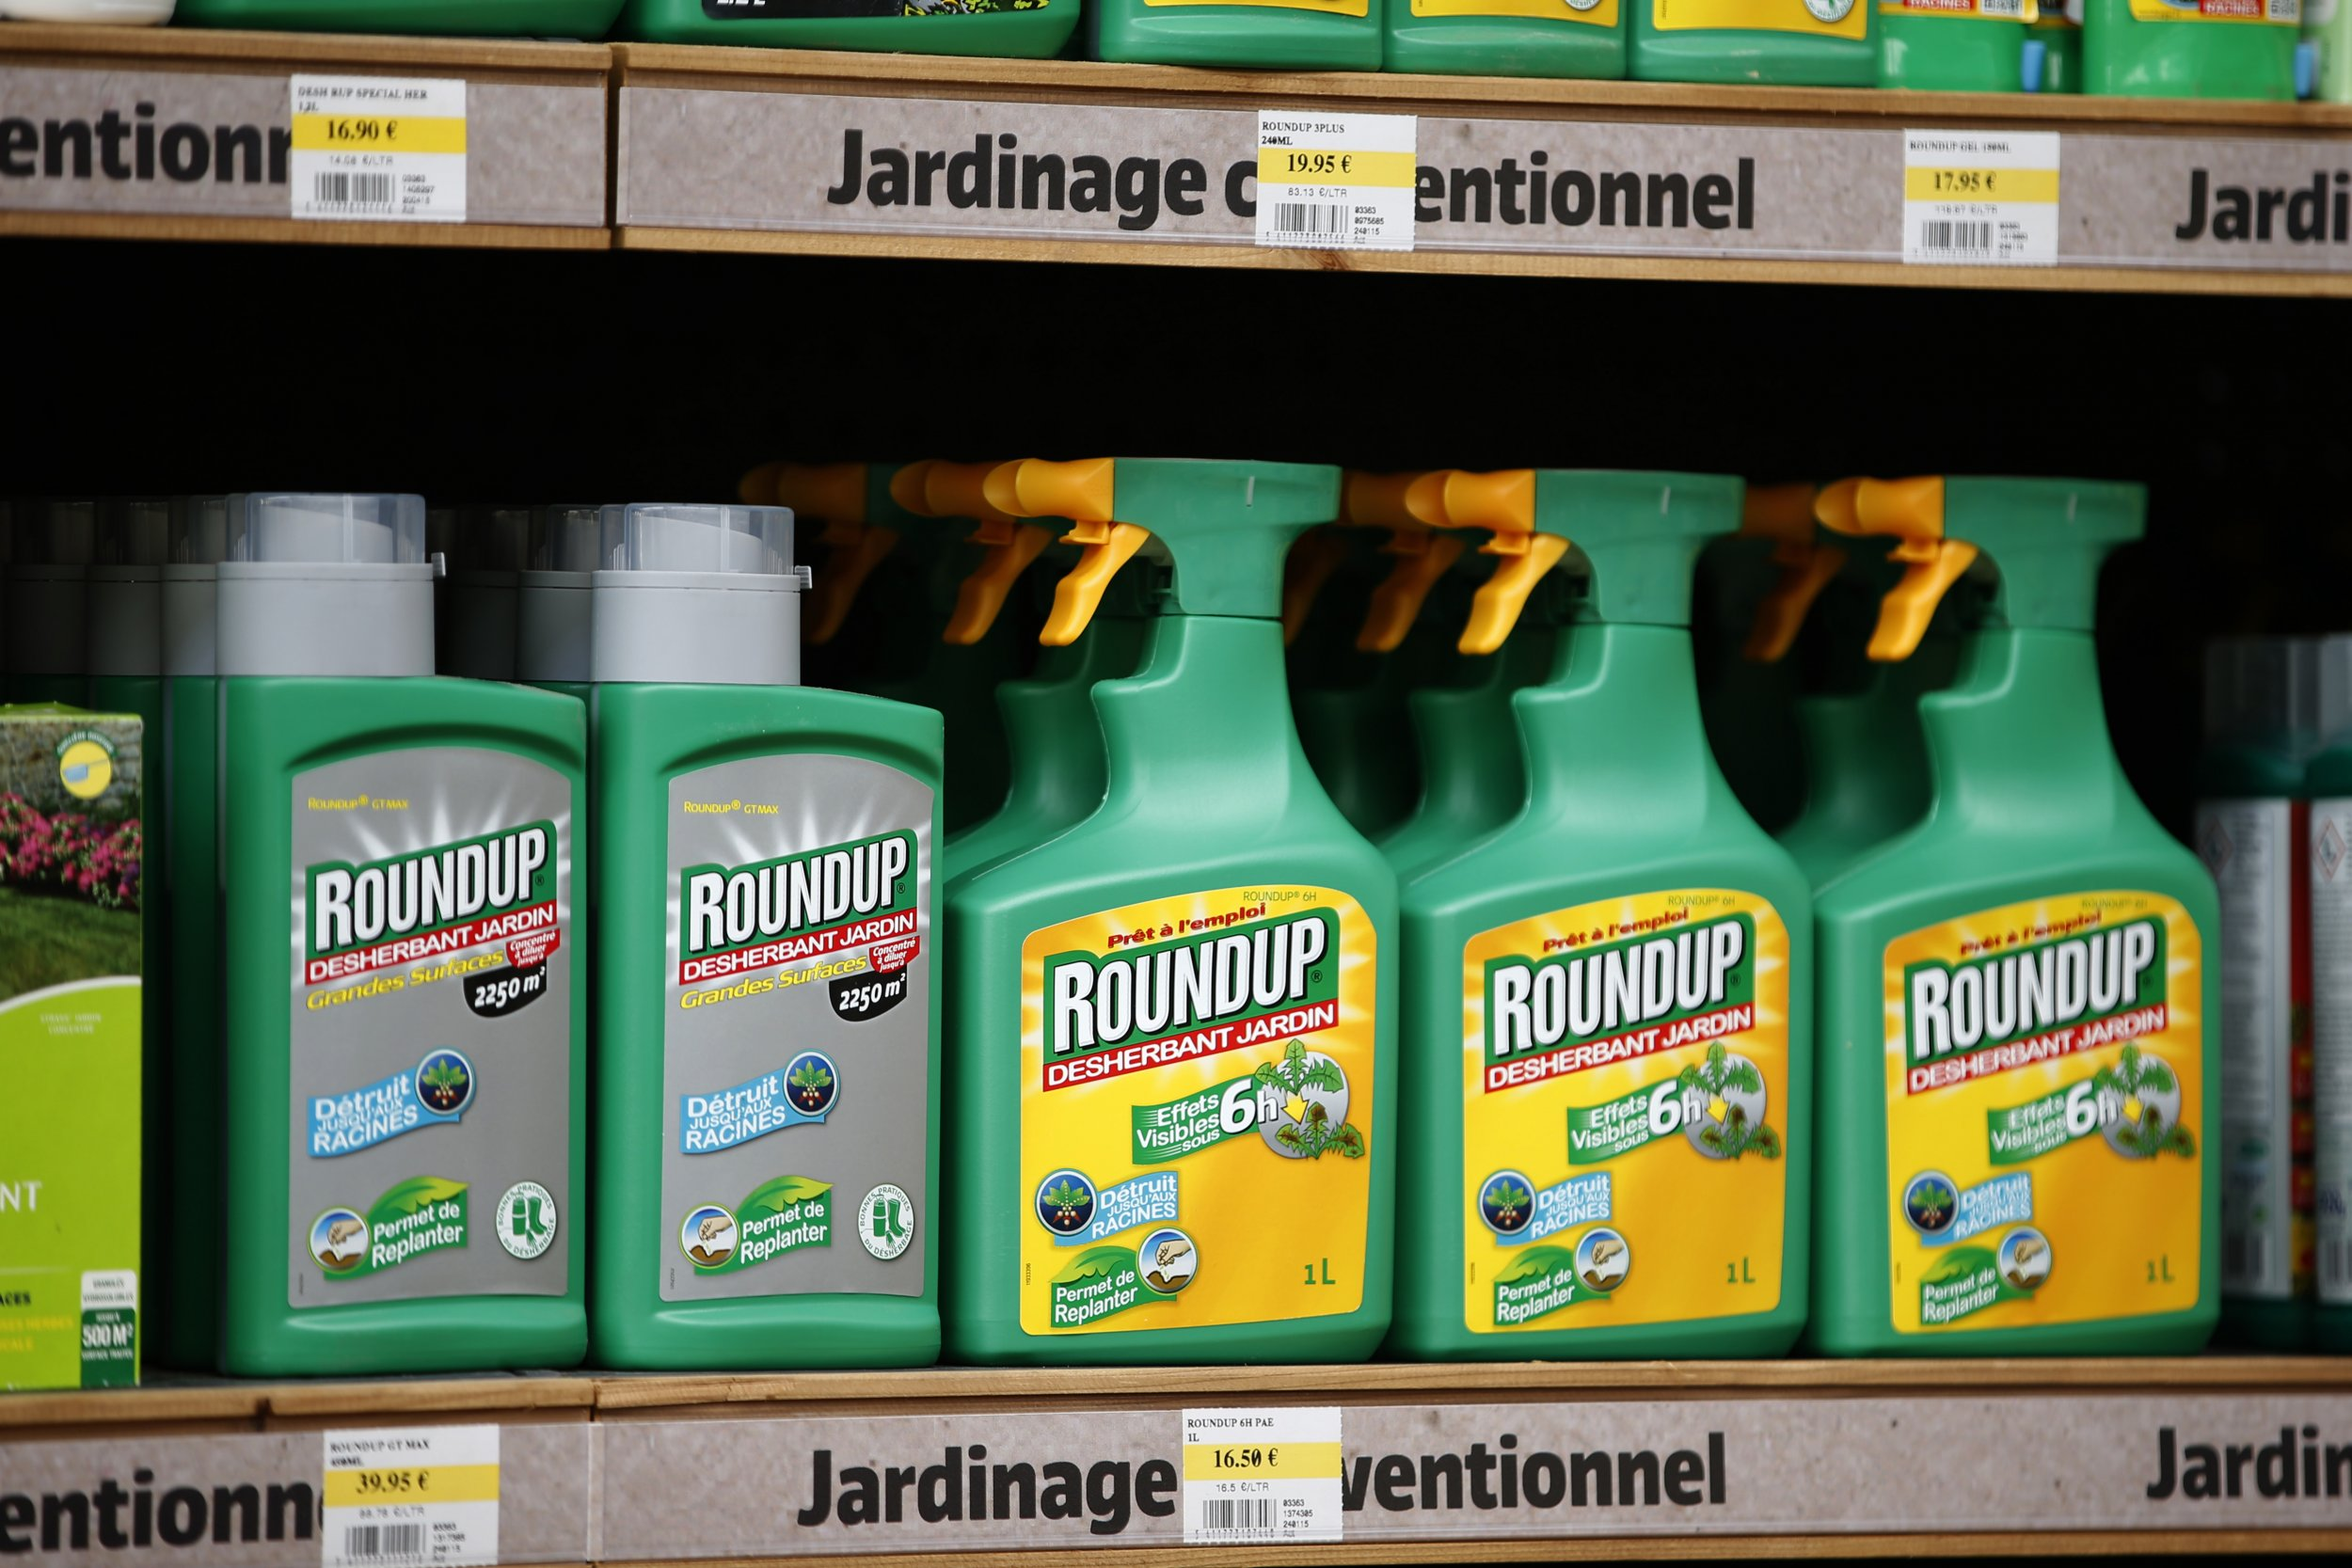 The Fda Will Begin Testing Food For Glyphosate The Most